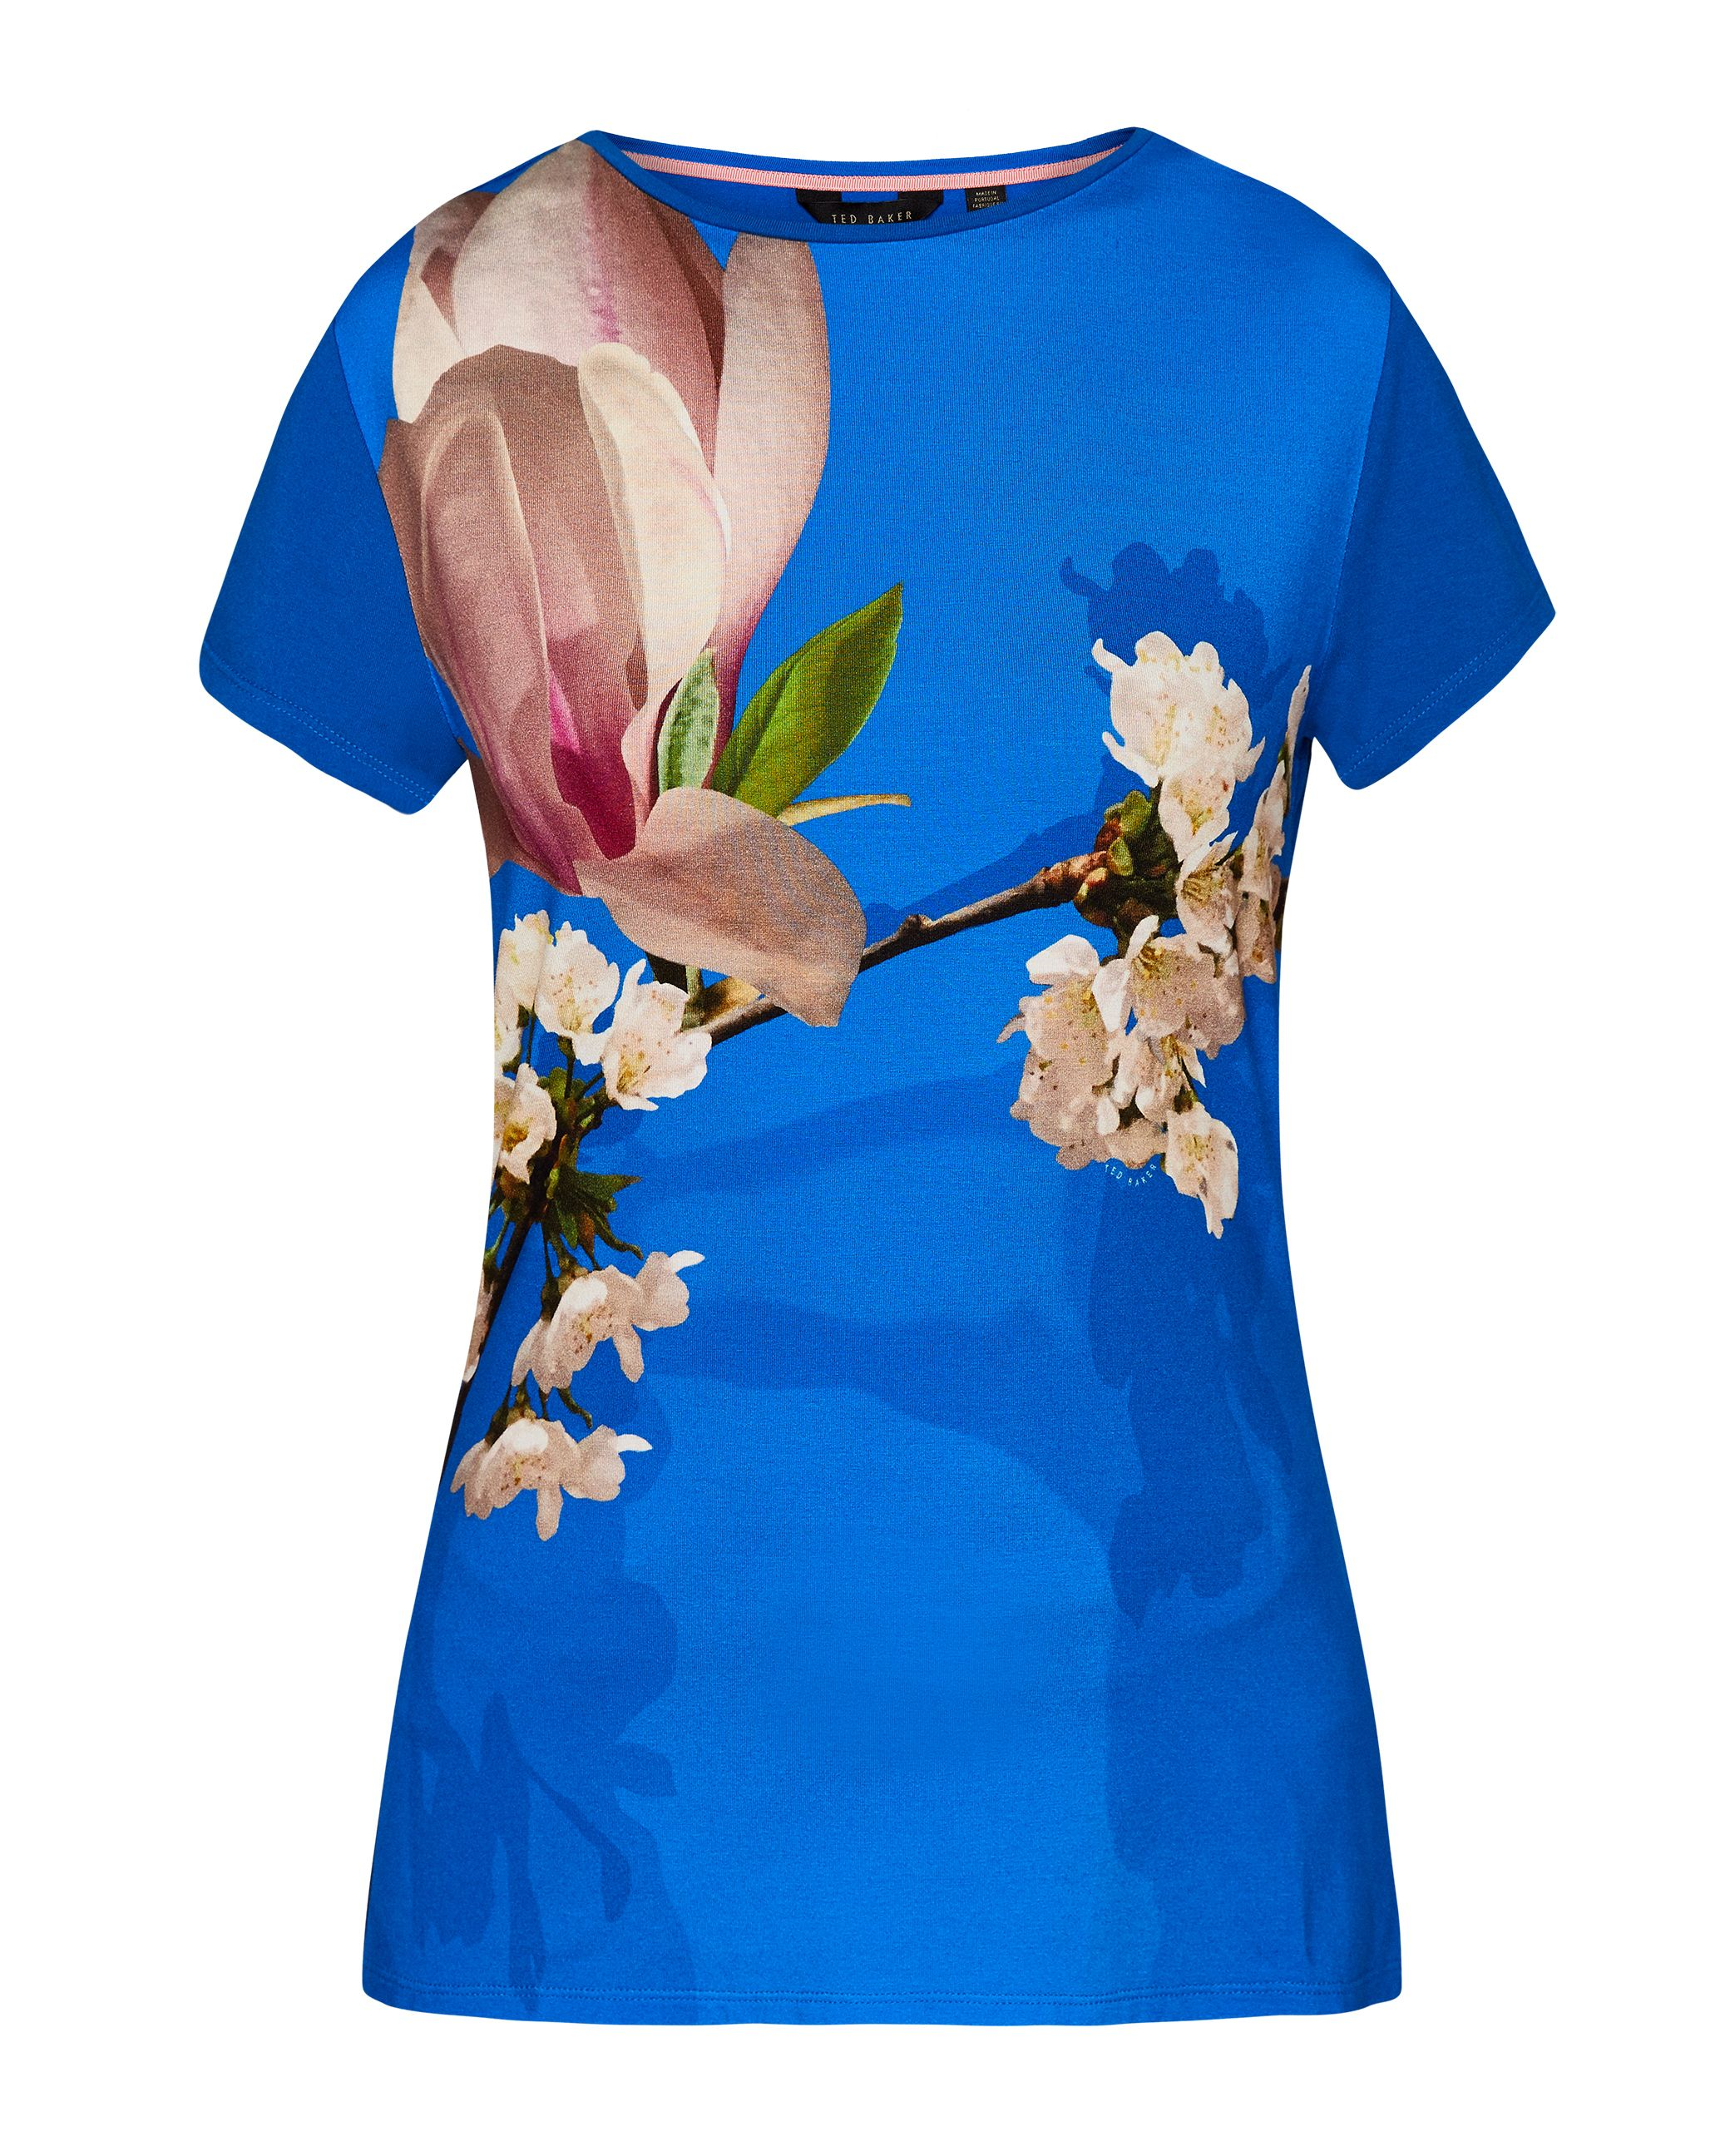 Ted Baker Aeesha Harmony Fitted T-Shirt, Bright Blue